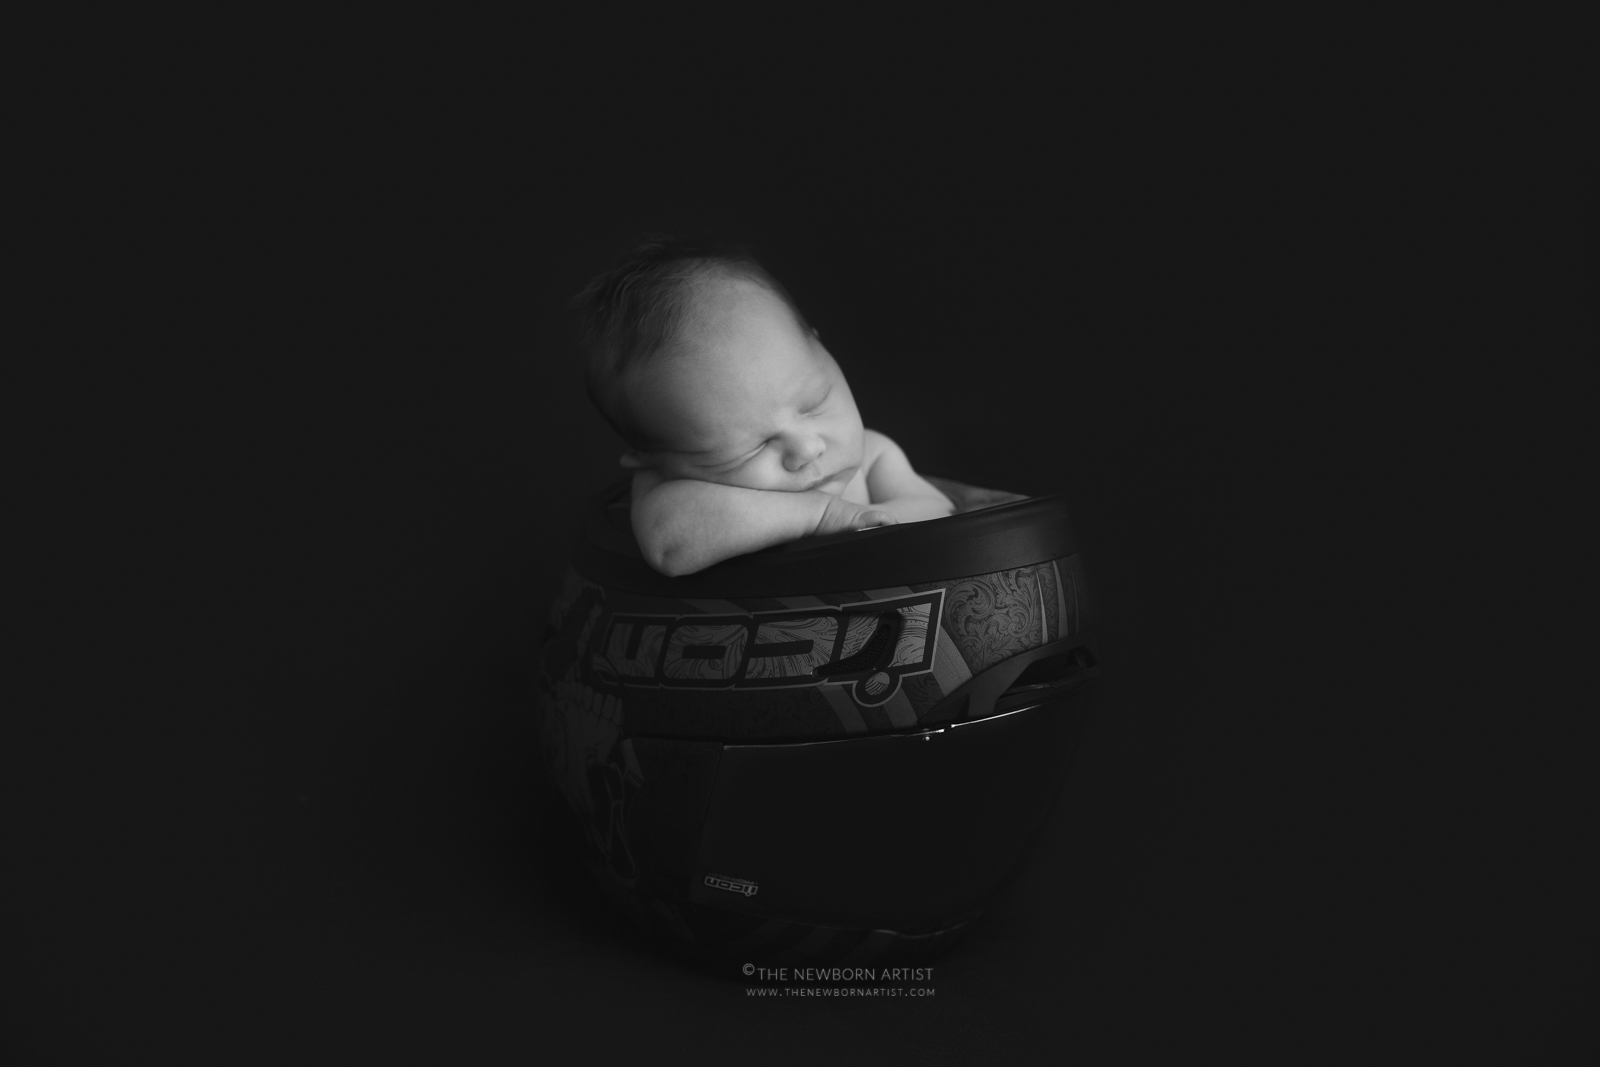 newborn baby in motorcycle helmet